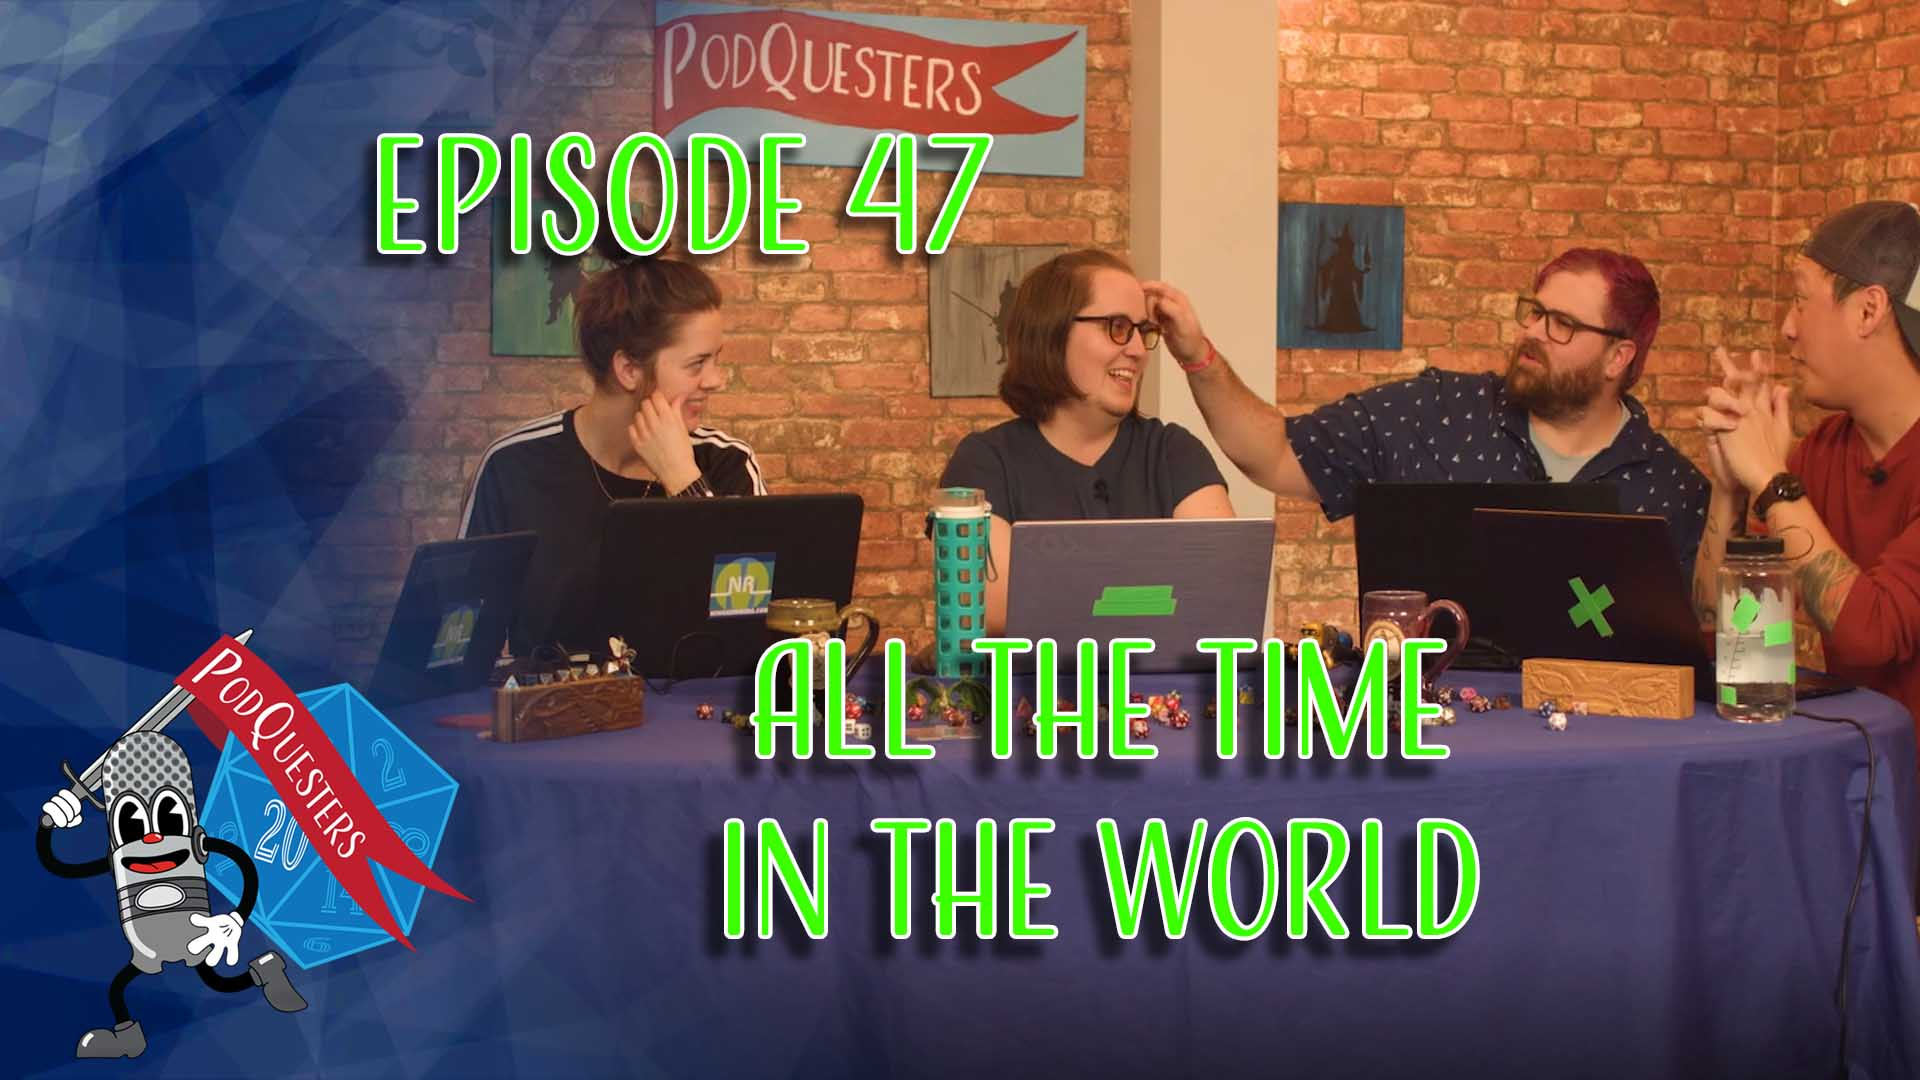 Podquesters - Episode 47: All The Time In The World